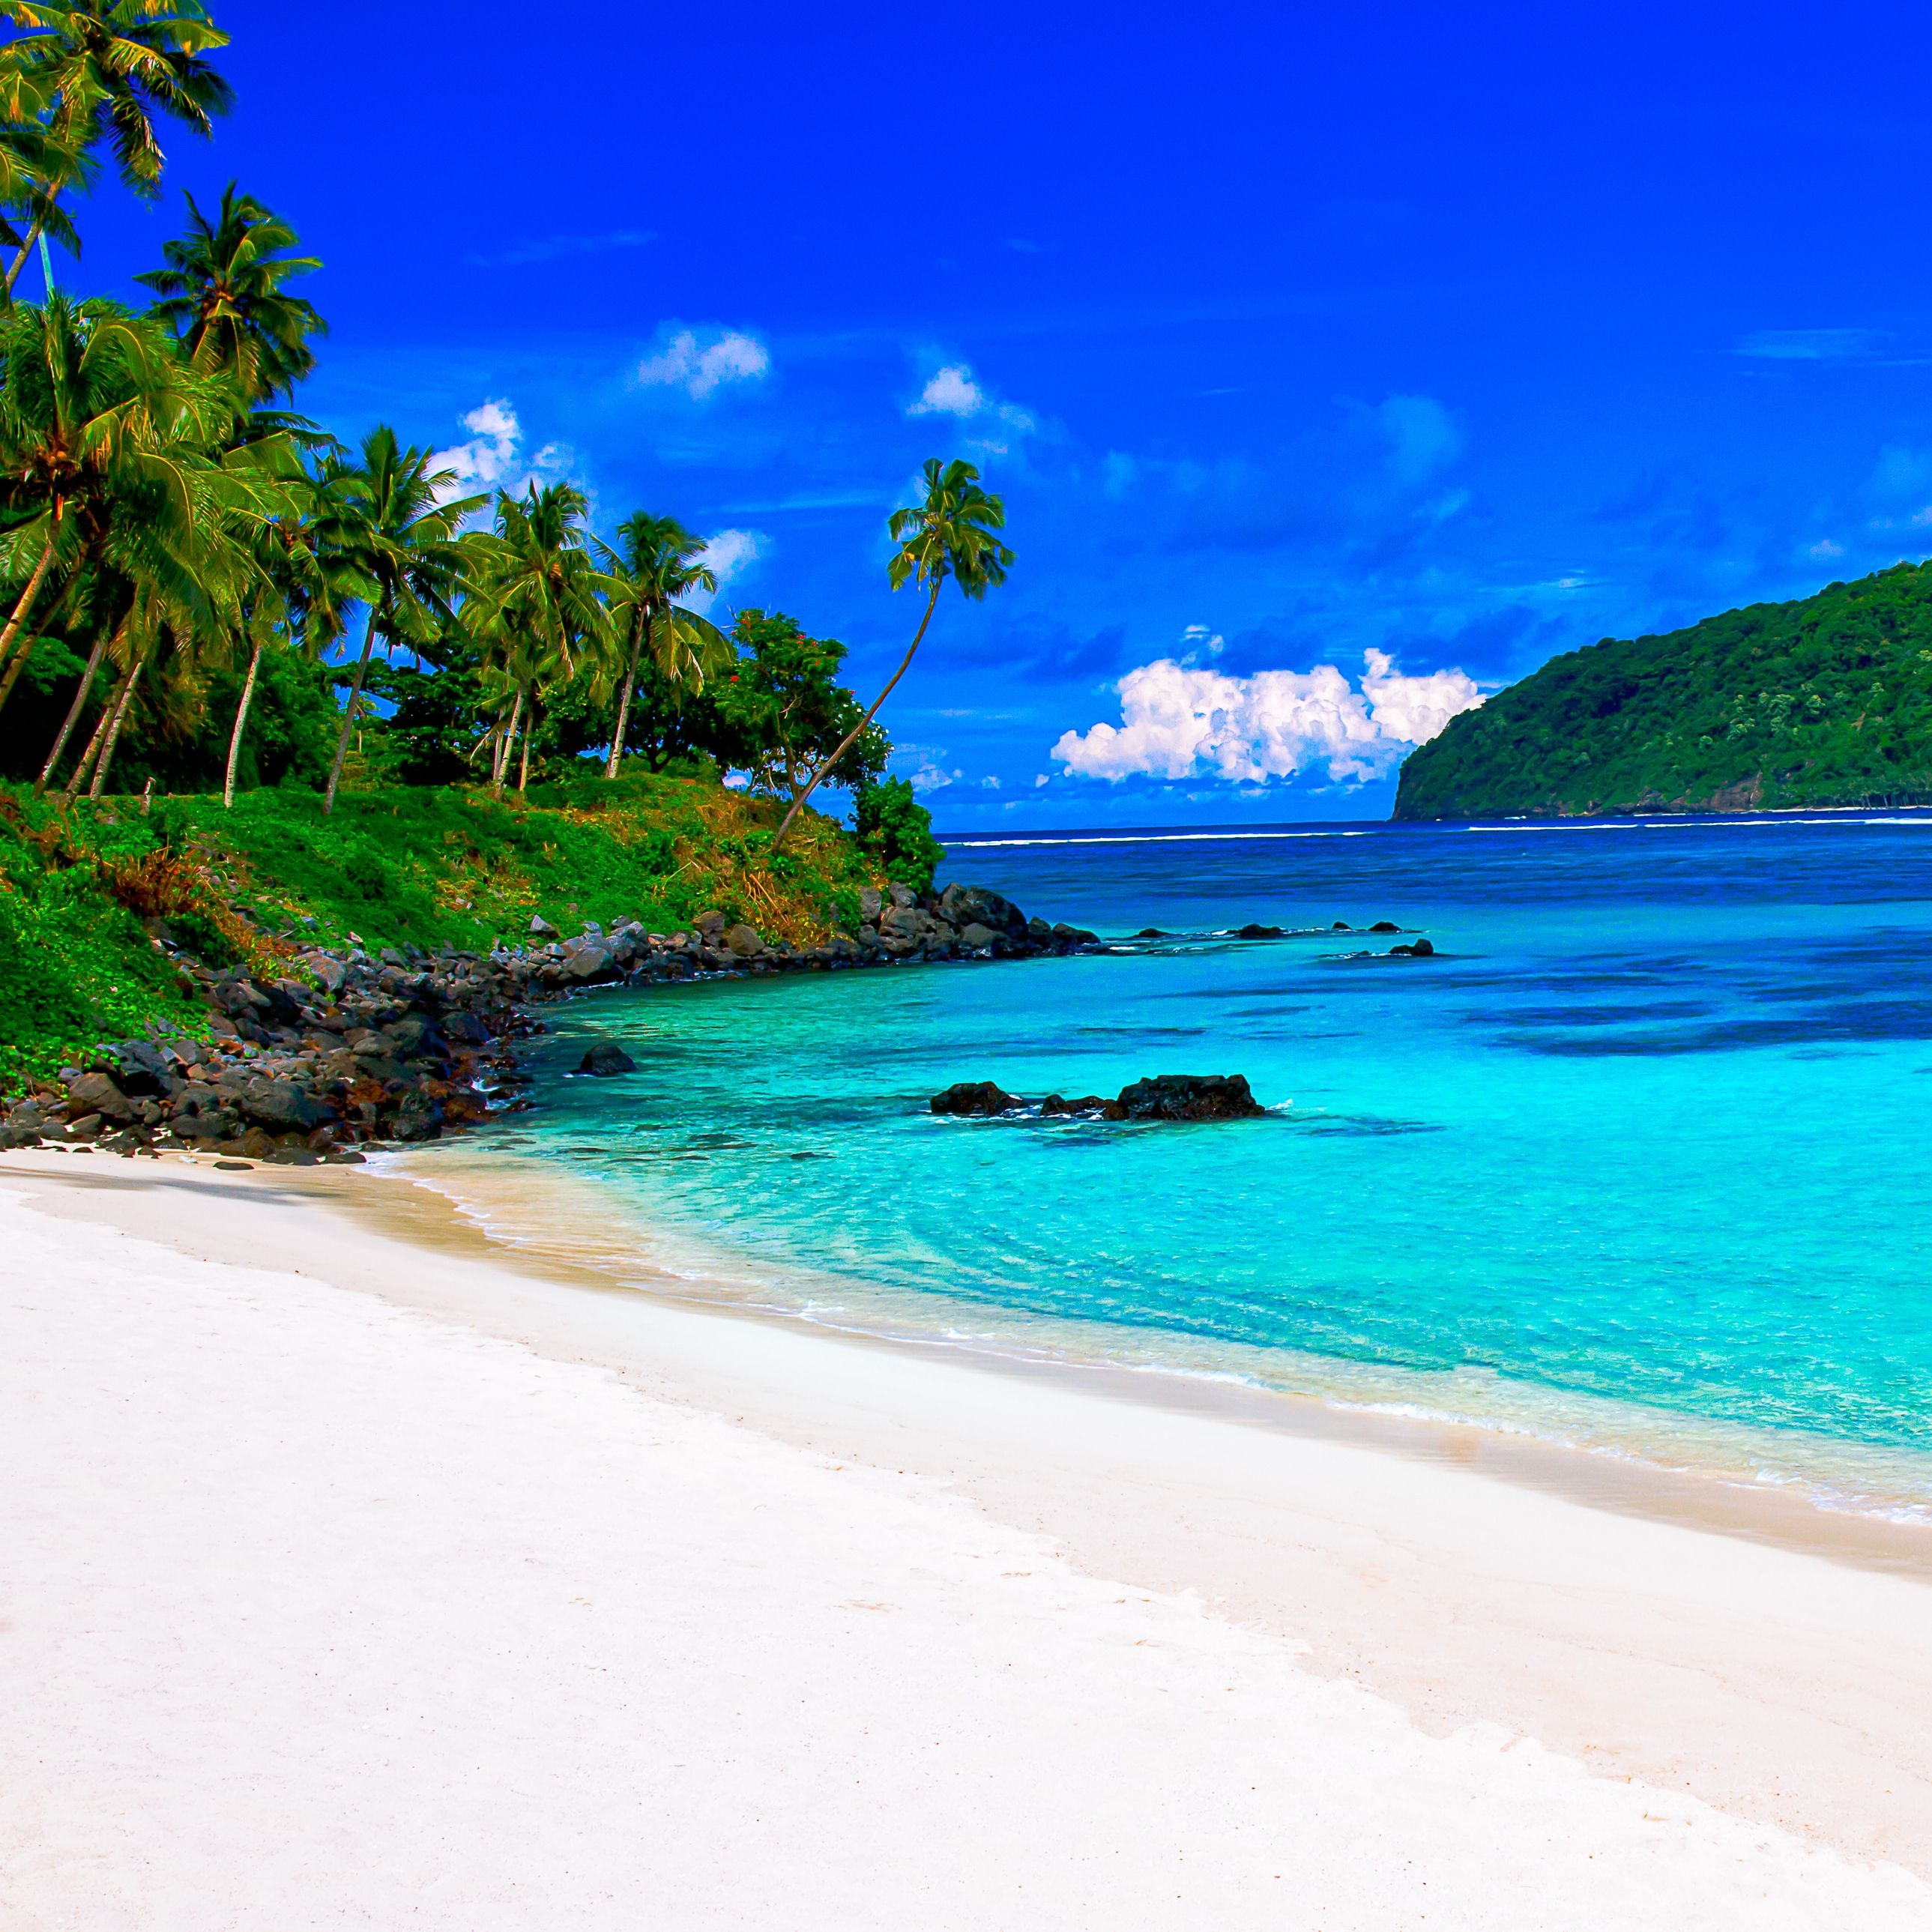 Tropical Island Paradise: Are You Dreaming Of A White Christmas? We Are, So We're